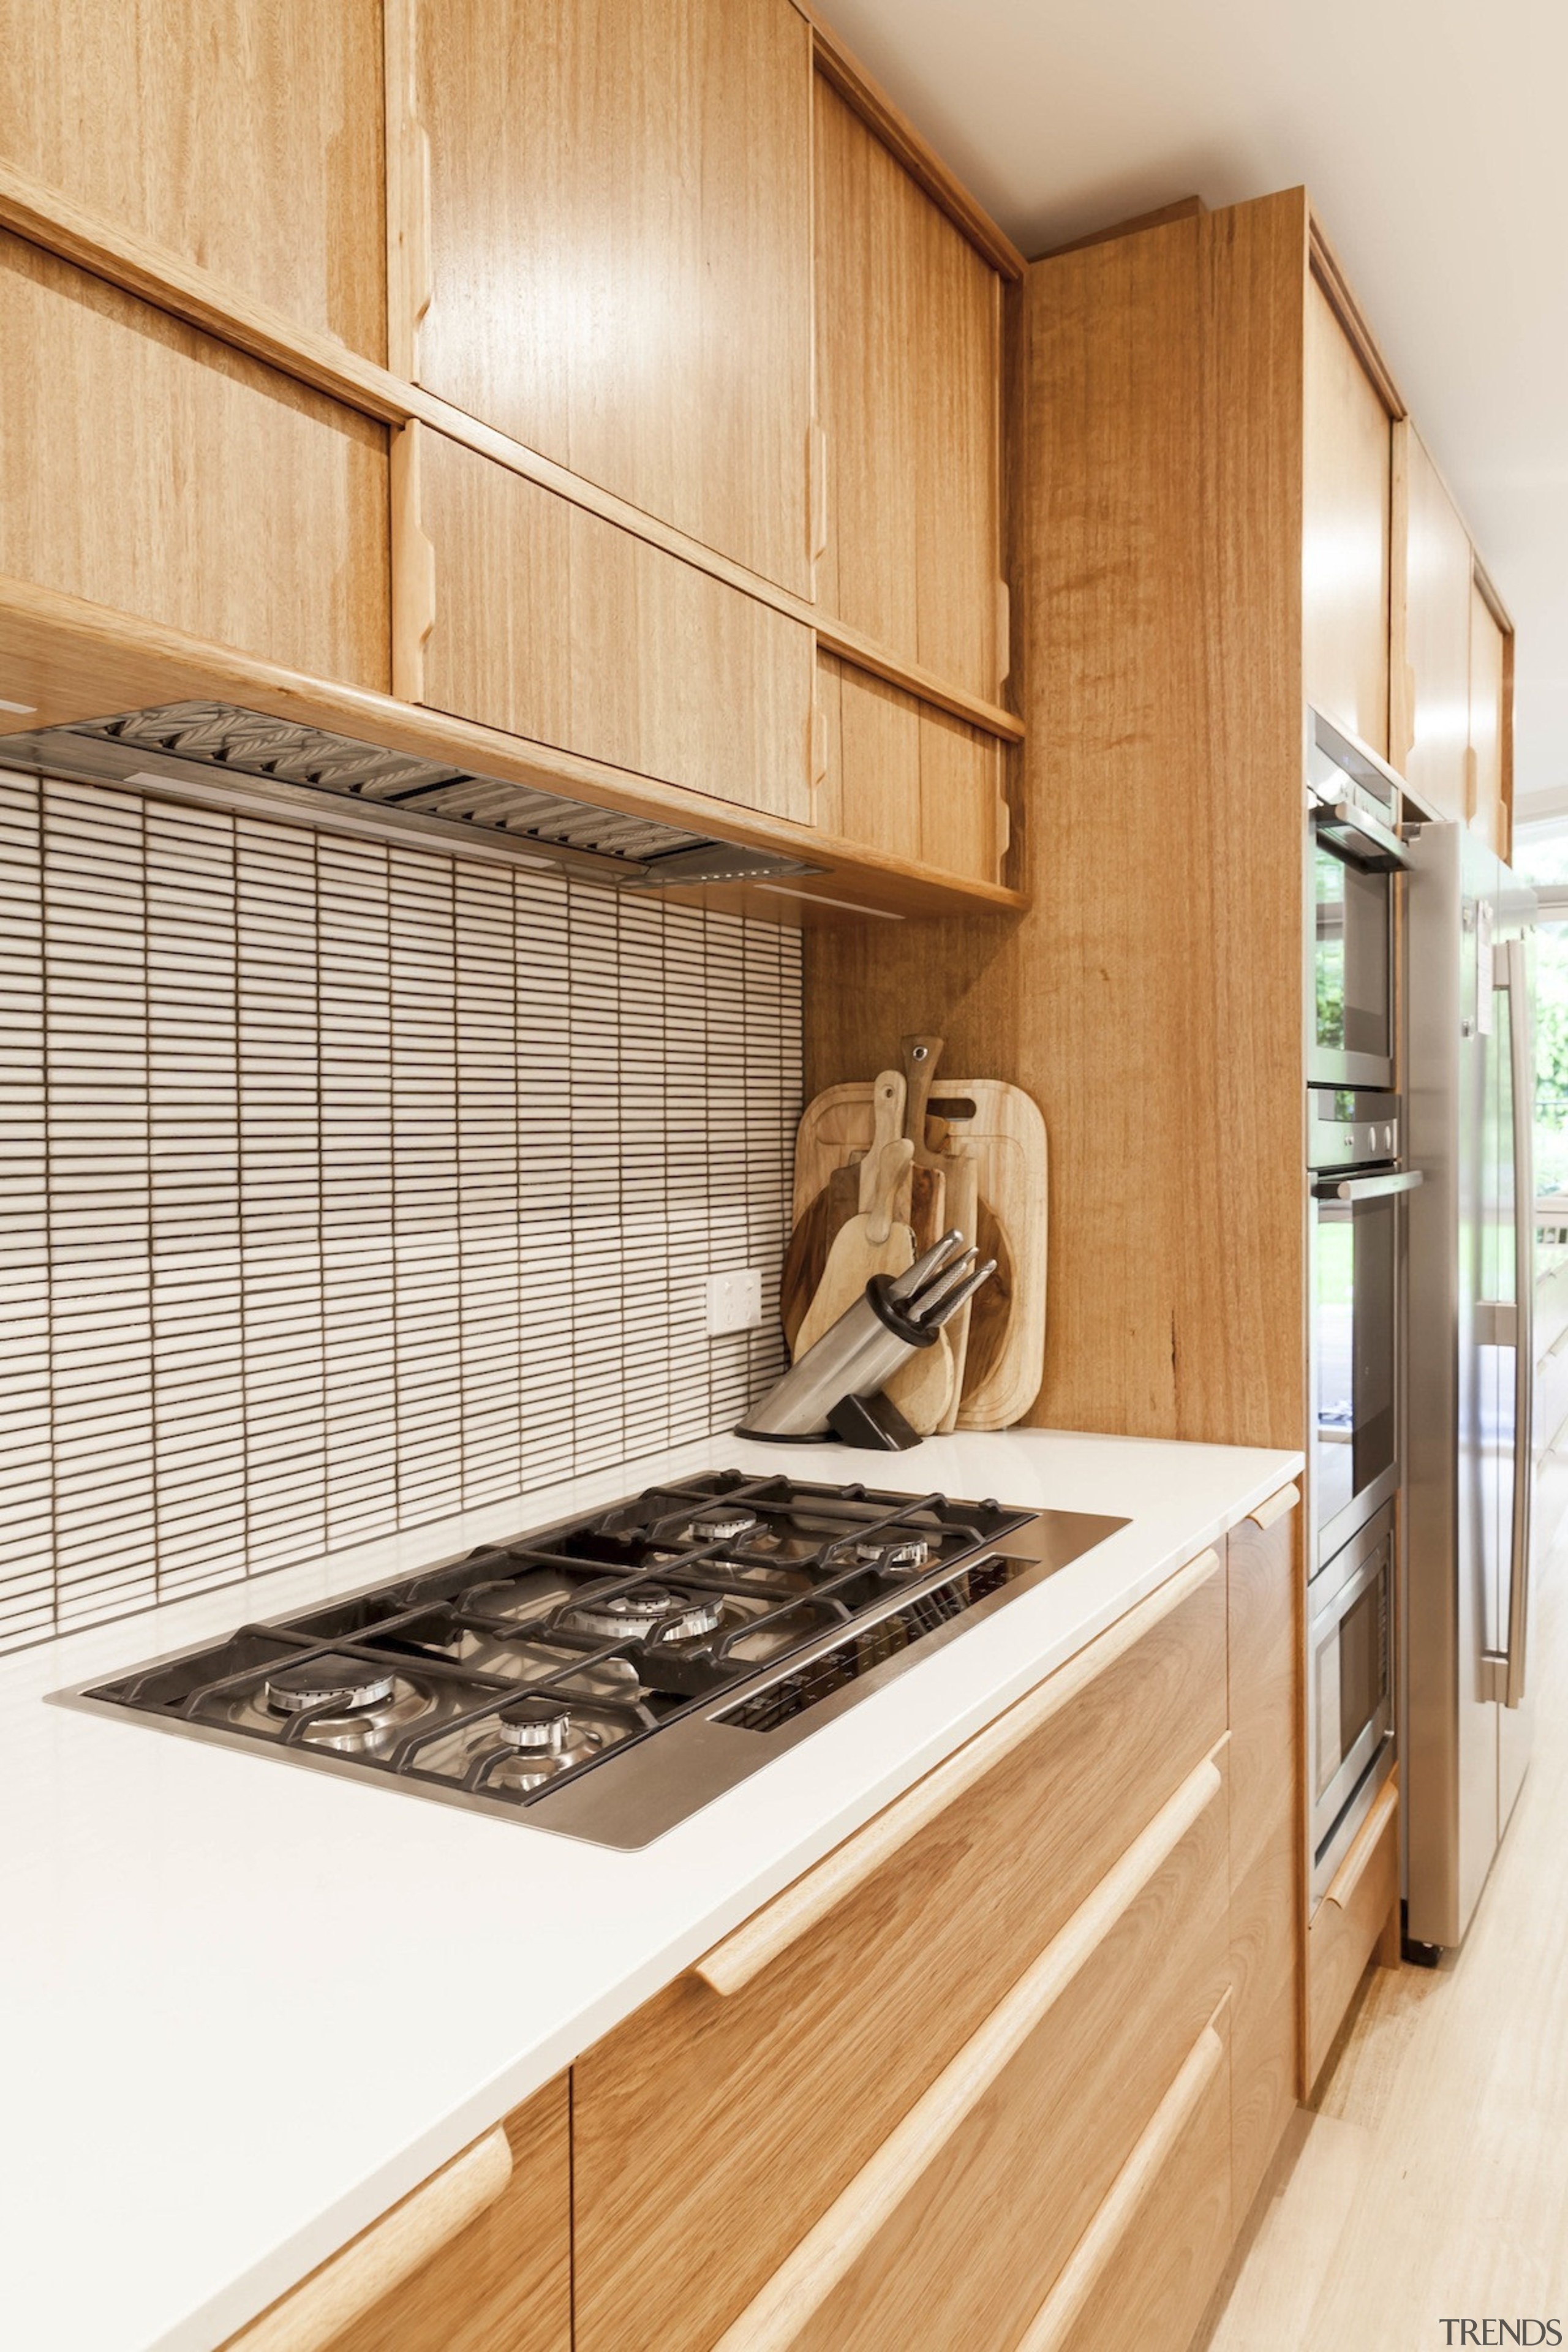 Wood cabinetry gives the kitchen a sustainable look cabinetry, countertop, cuisine classique, interior design, kitchen, room, white, orange